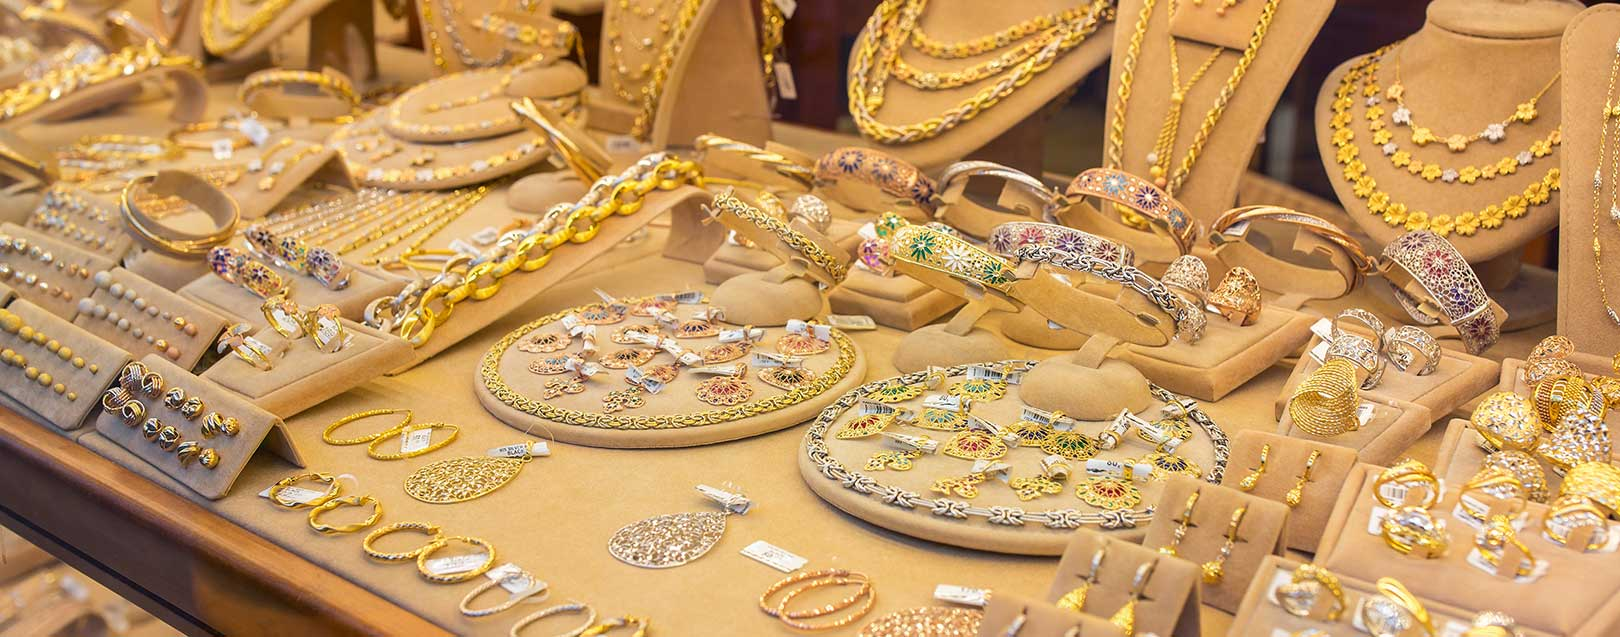 India's gems and jewellery exports decline by 11% in Feb